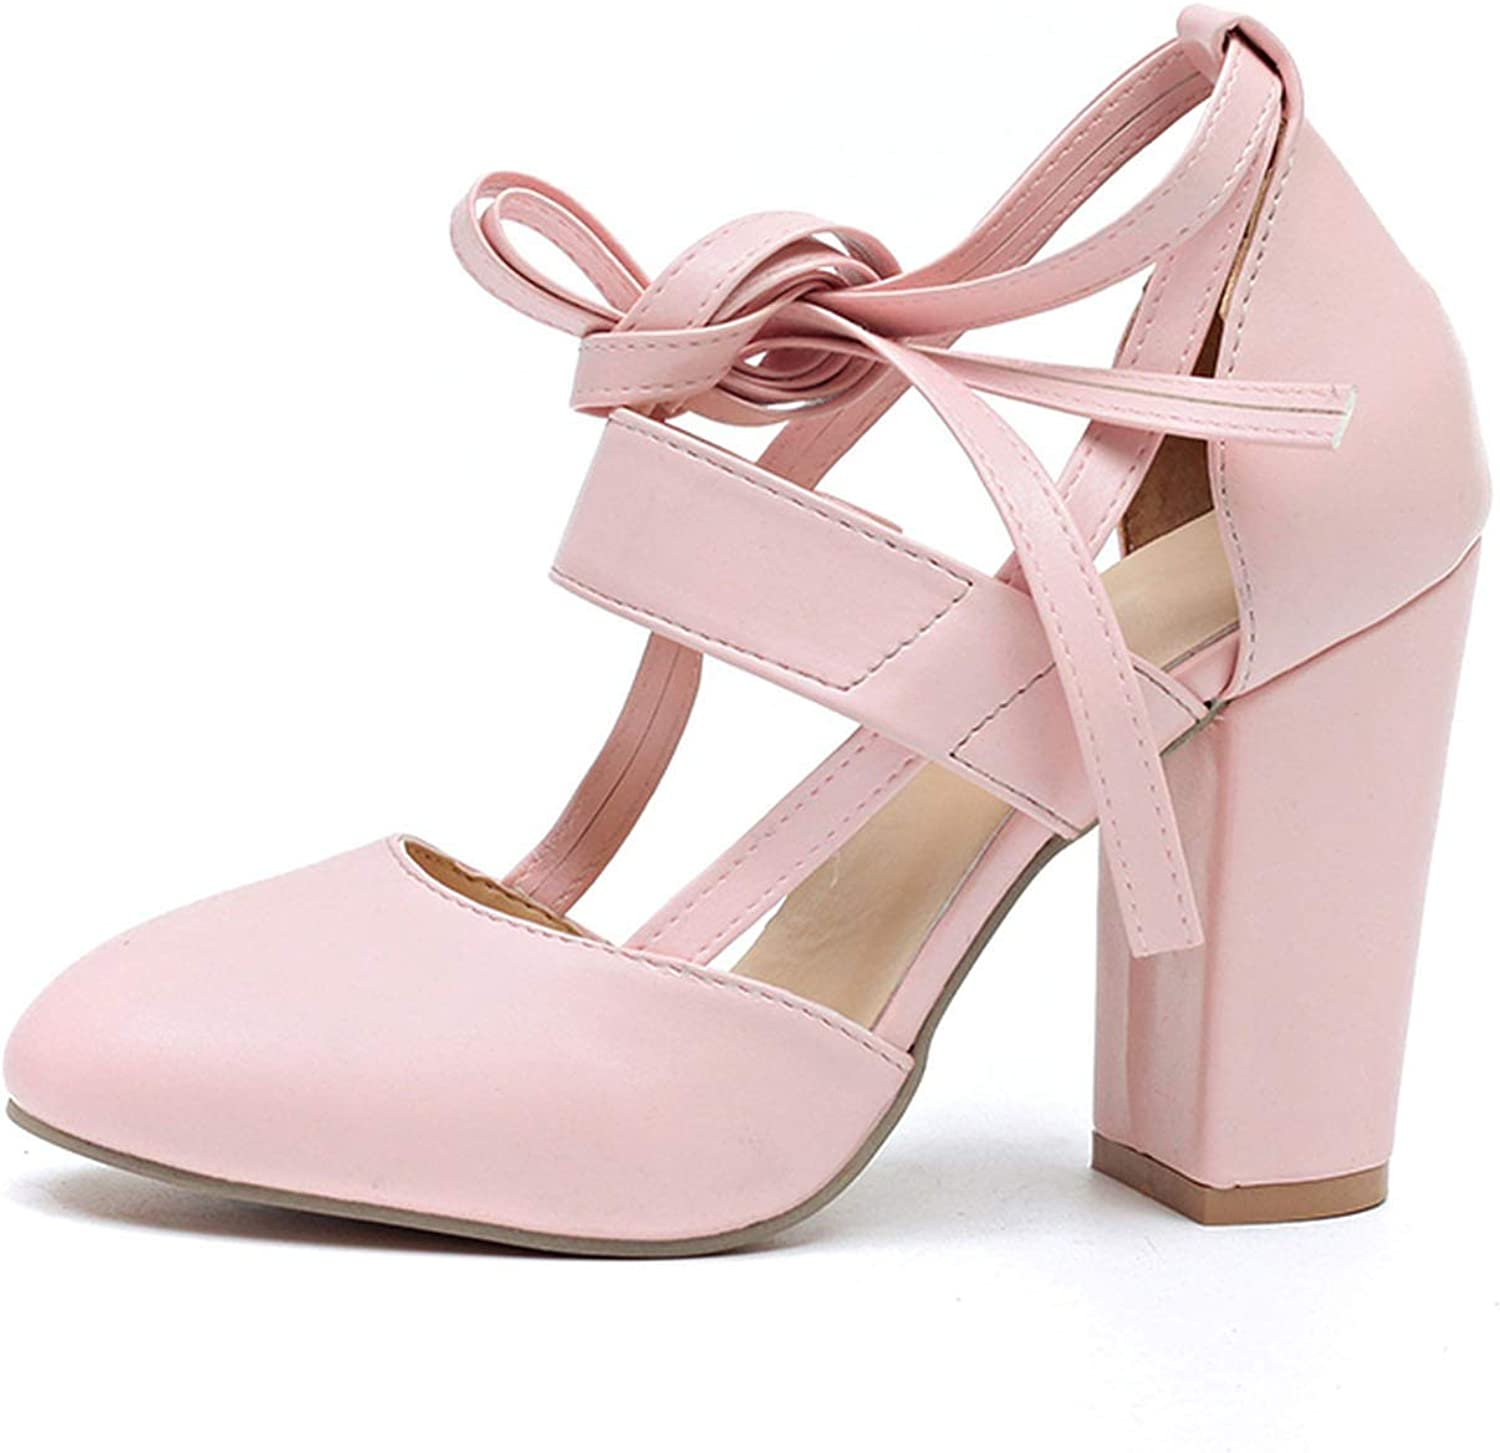 Monica's house Plus Size Female Ankle Strap High Heels shoes Thick Heel for Women Party Wedding,Pink-D2314,6.5